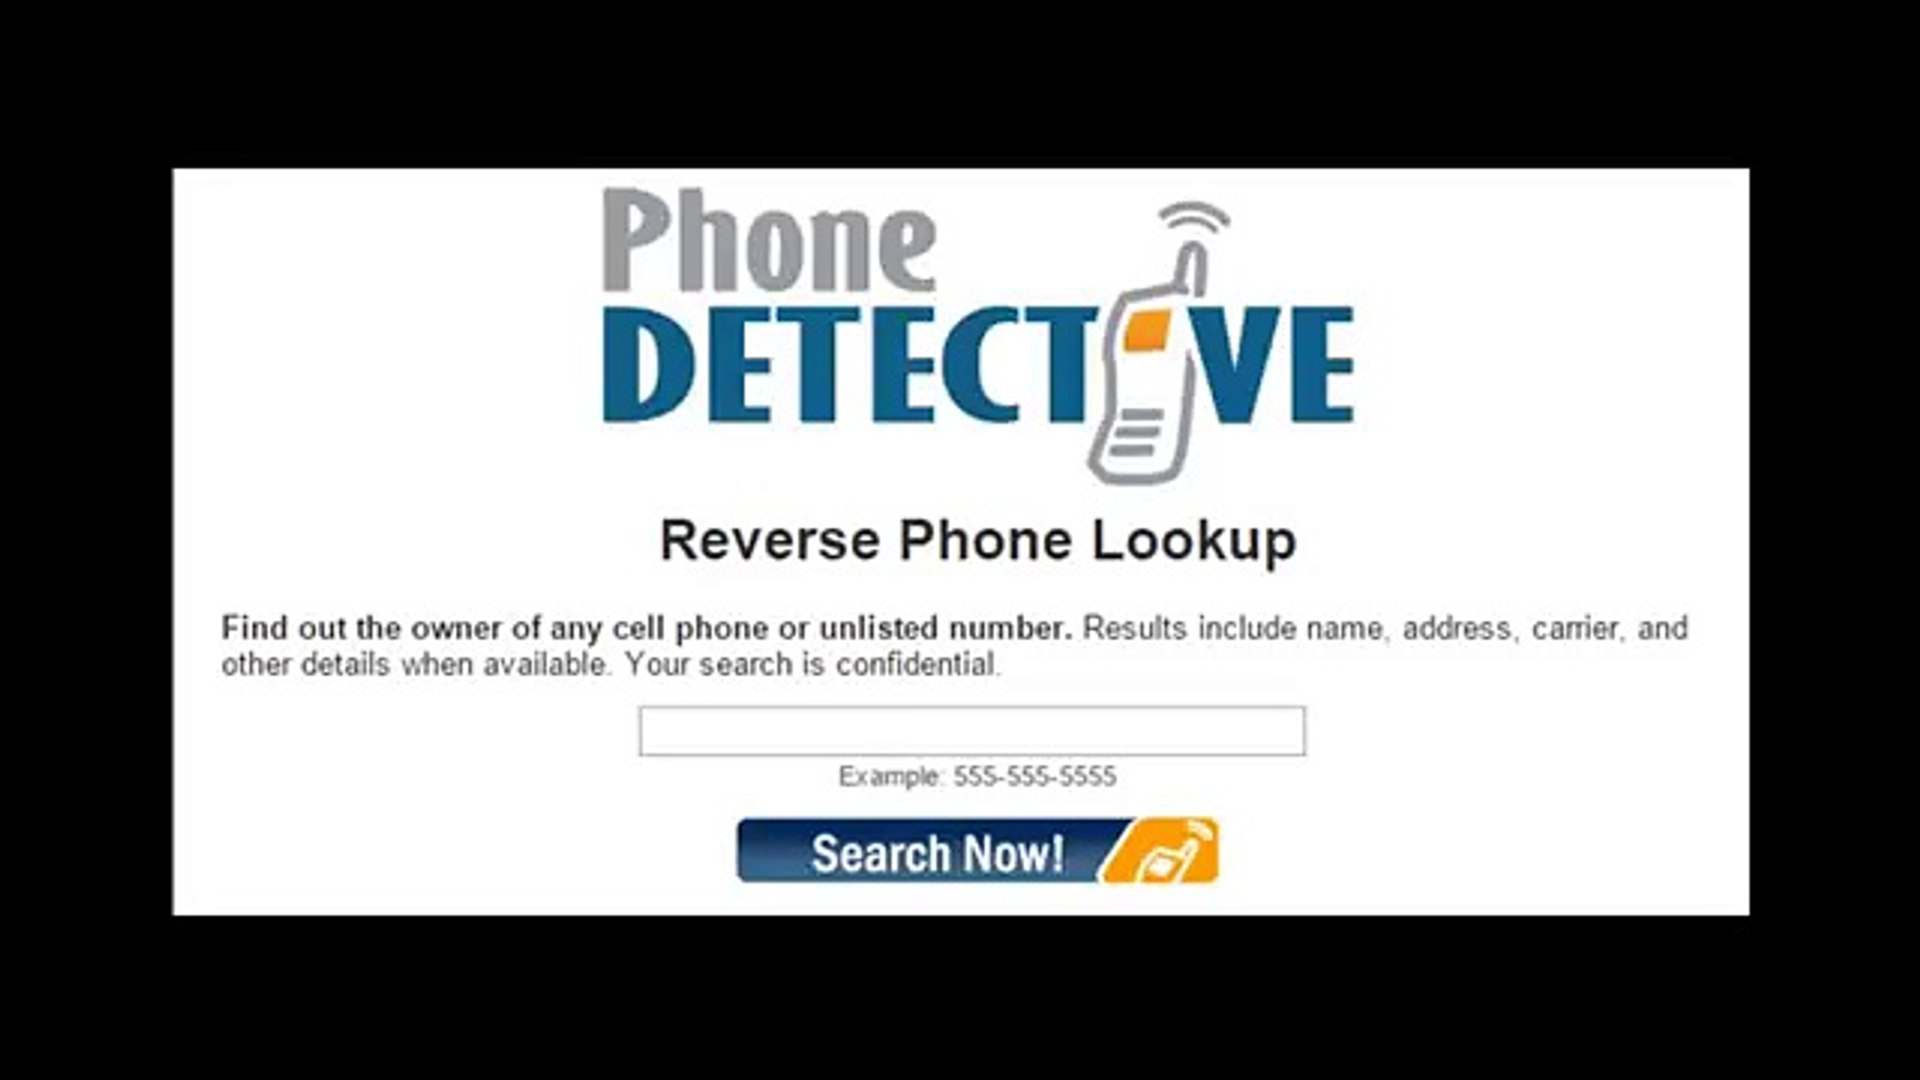 What Can You Use Reverse Phone Lookup For?